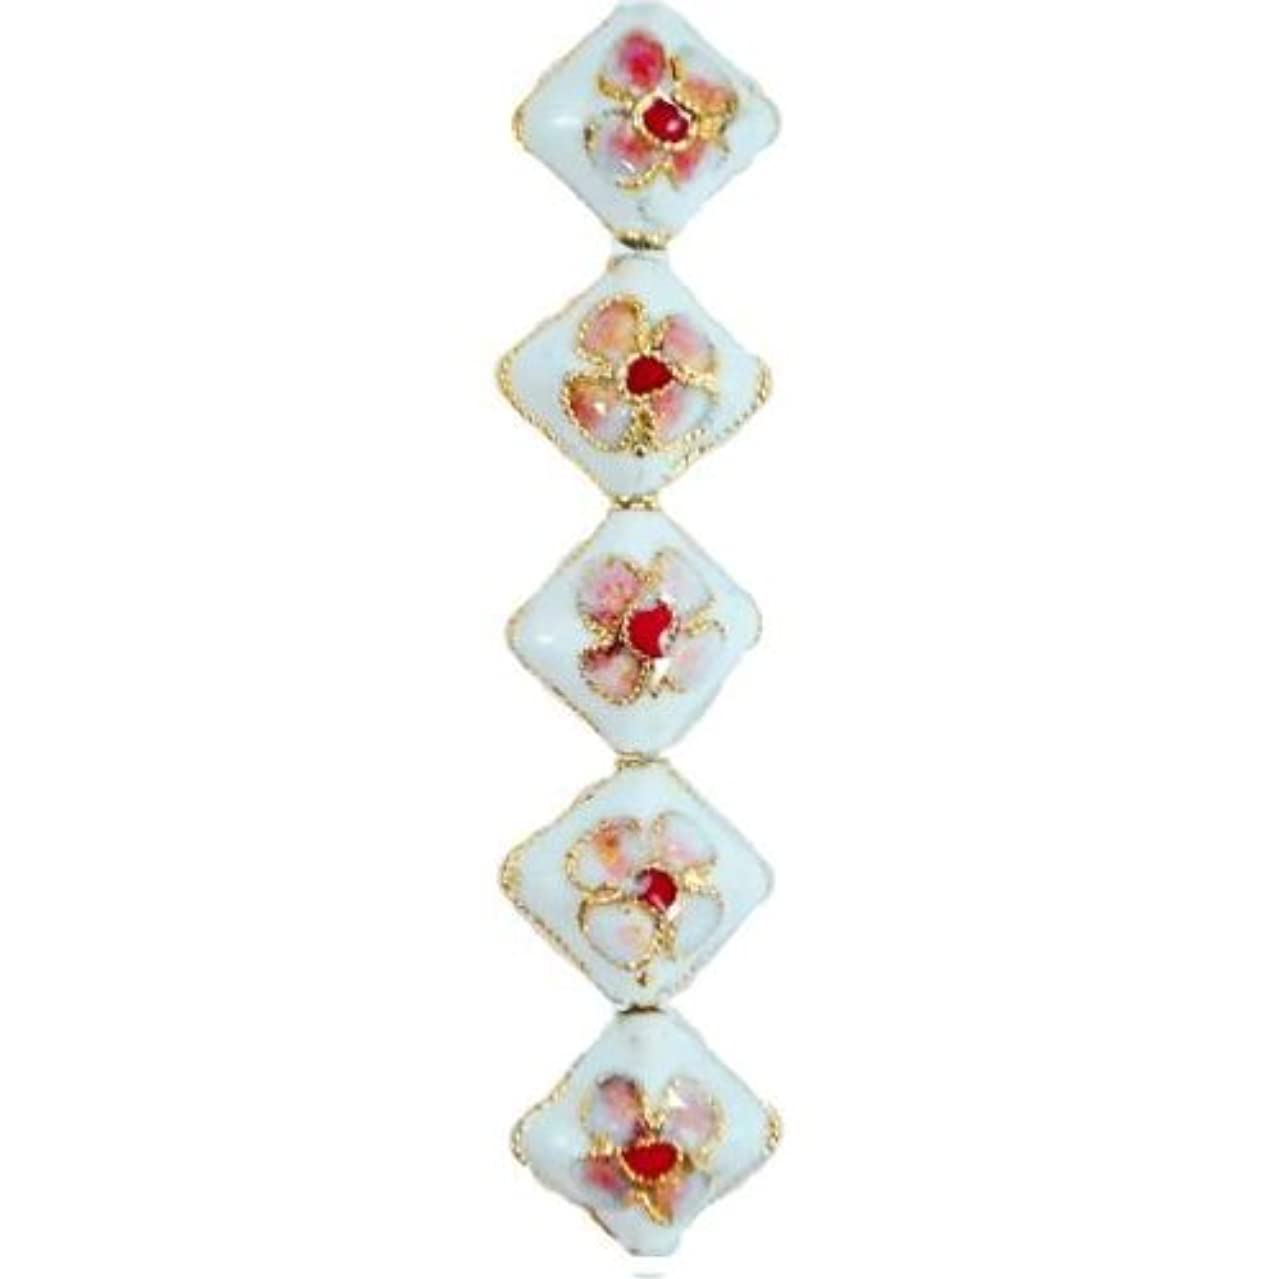 Expo BD51810 Cloisonne Beads, 14-Pack